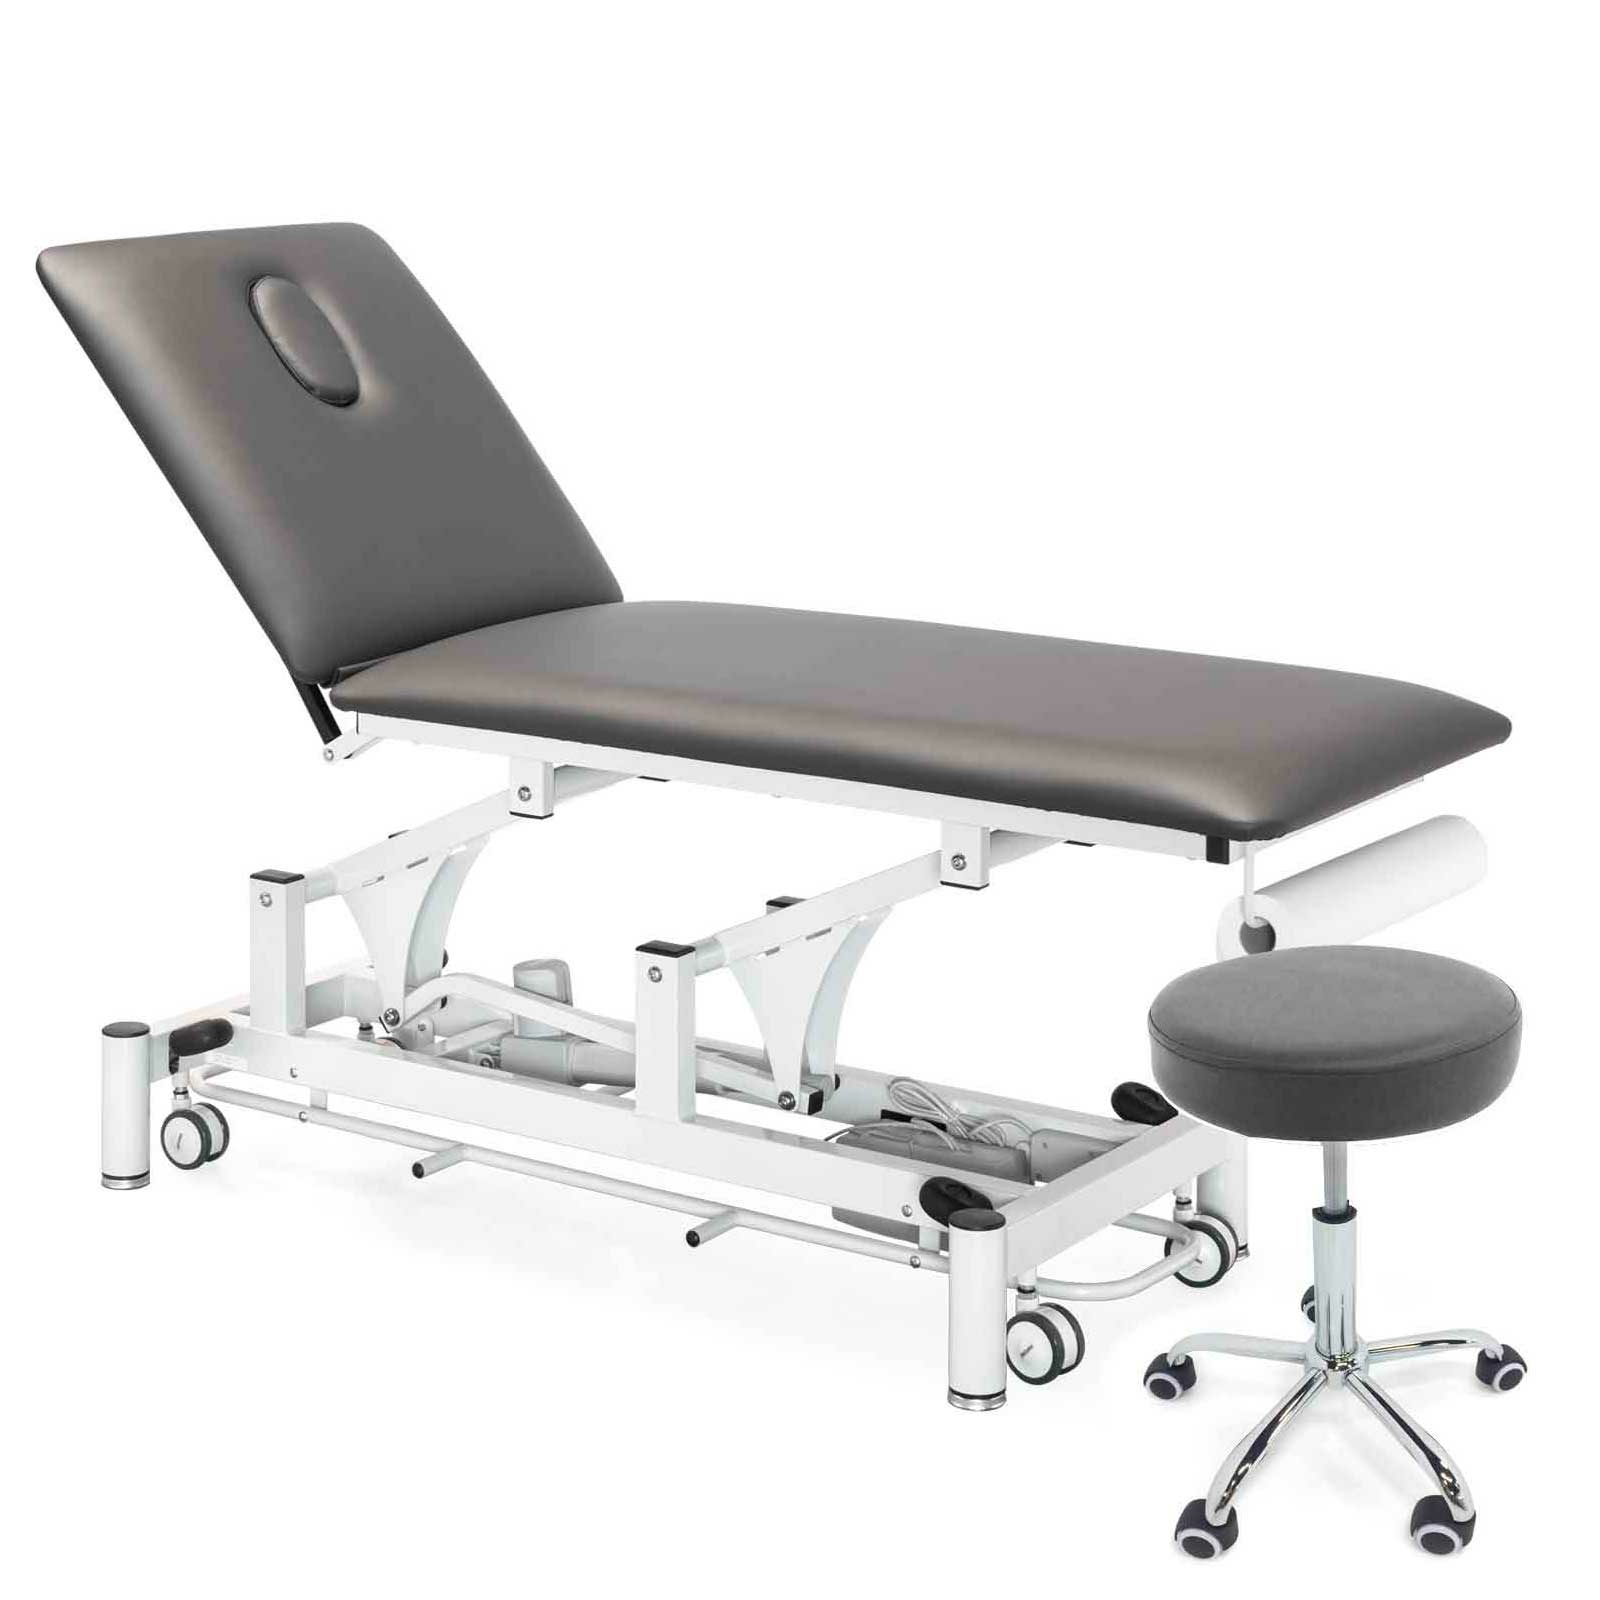 Table PhysioPRO + Tabouret